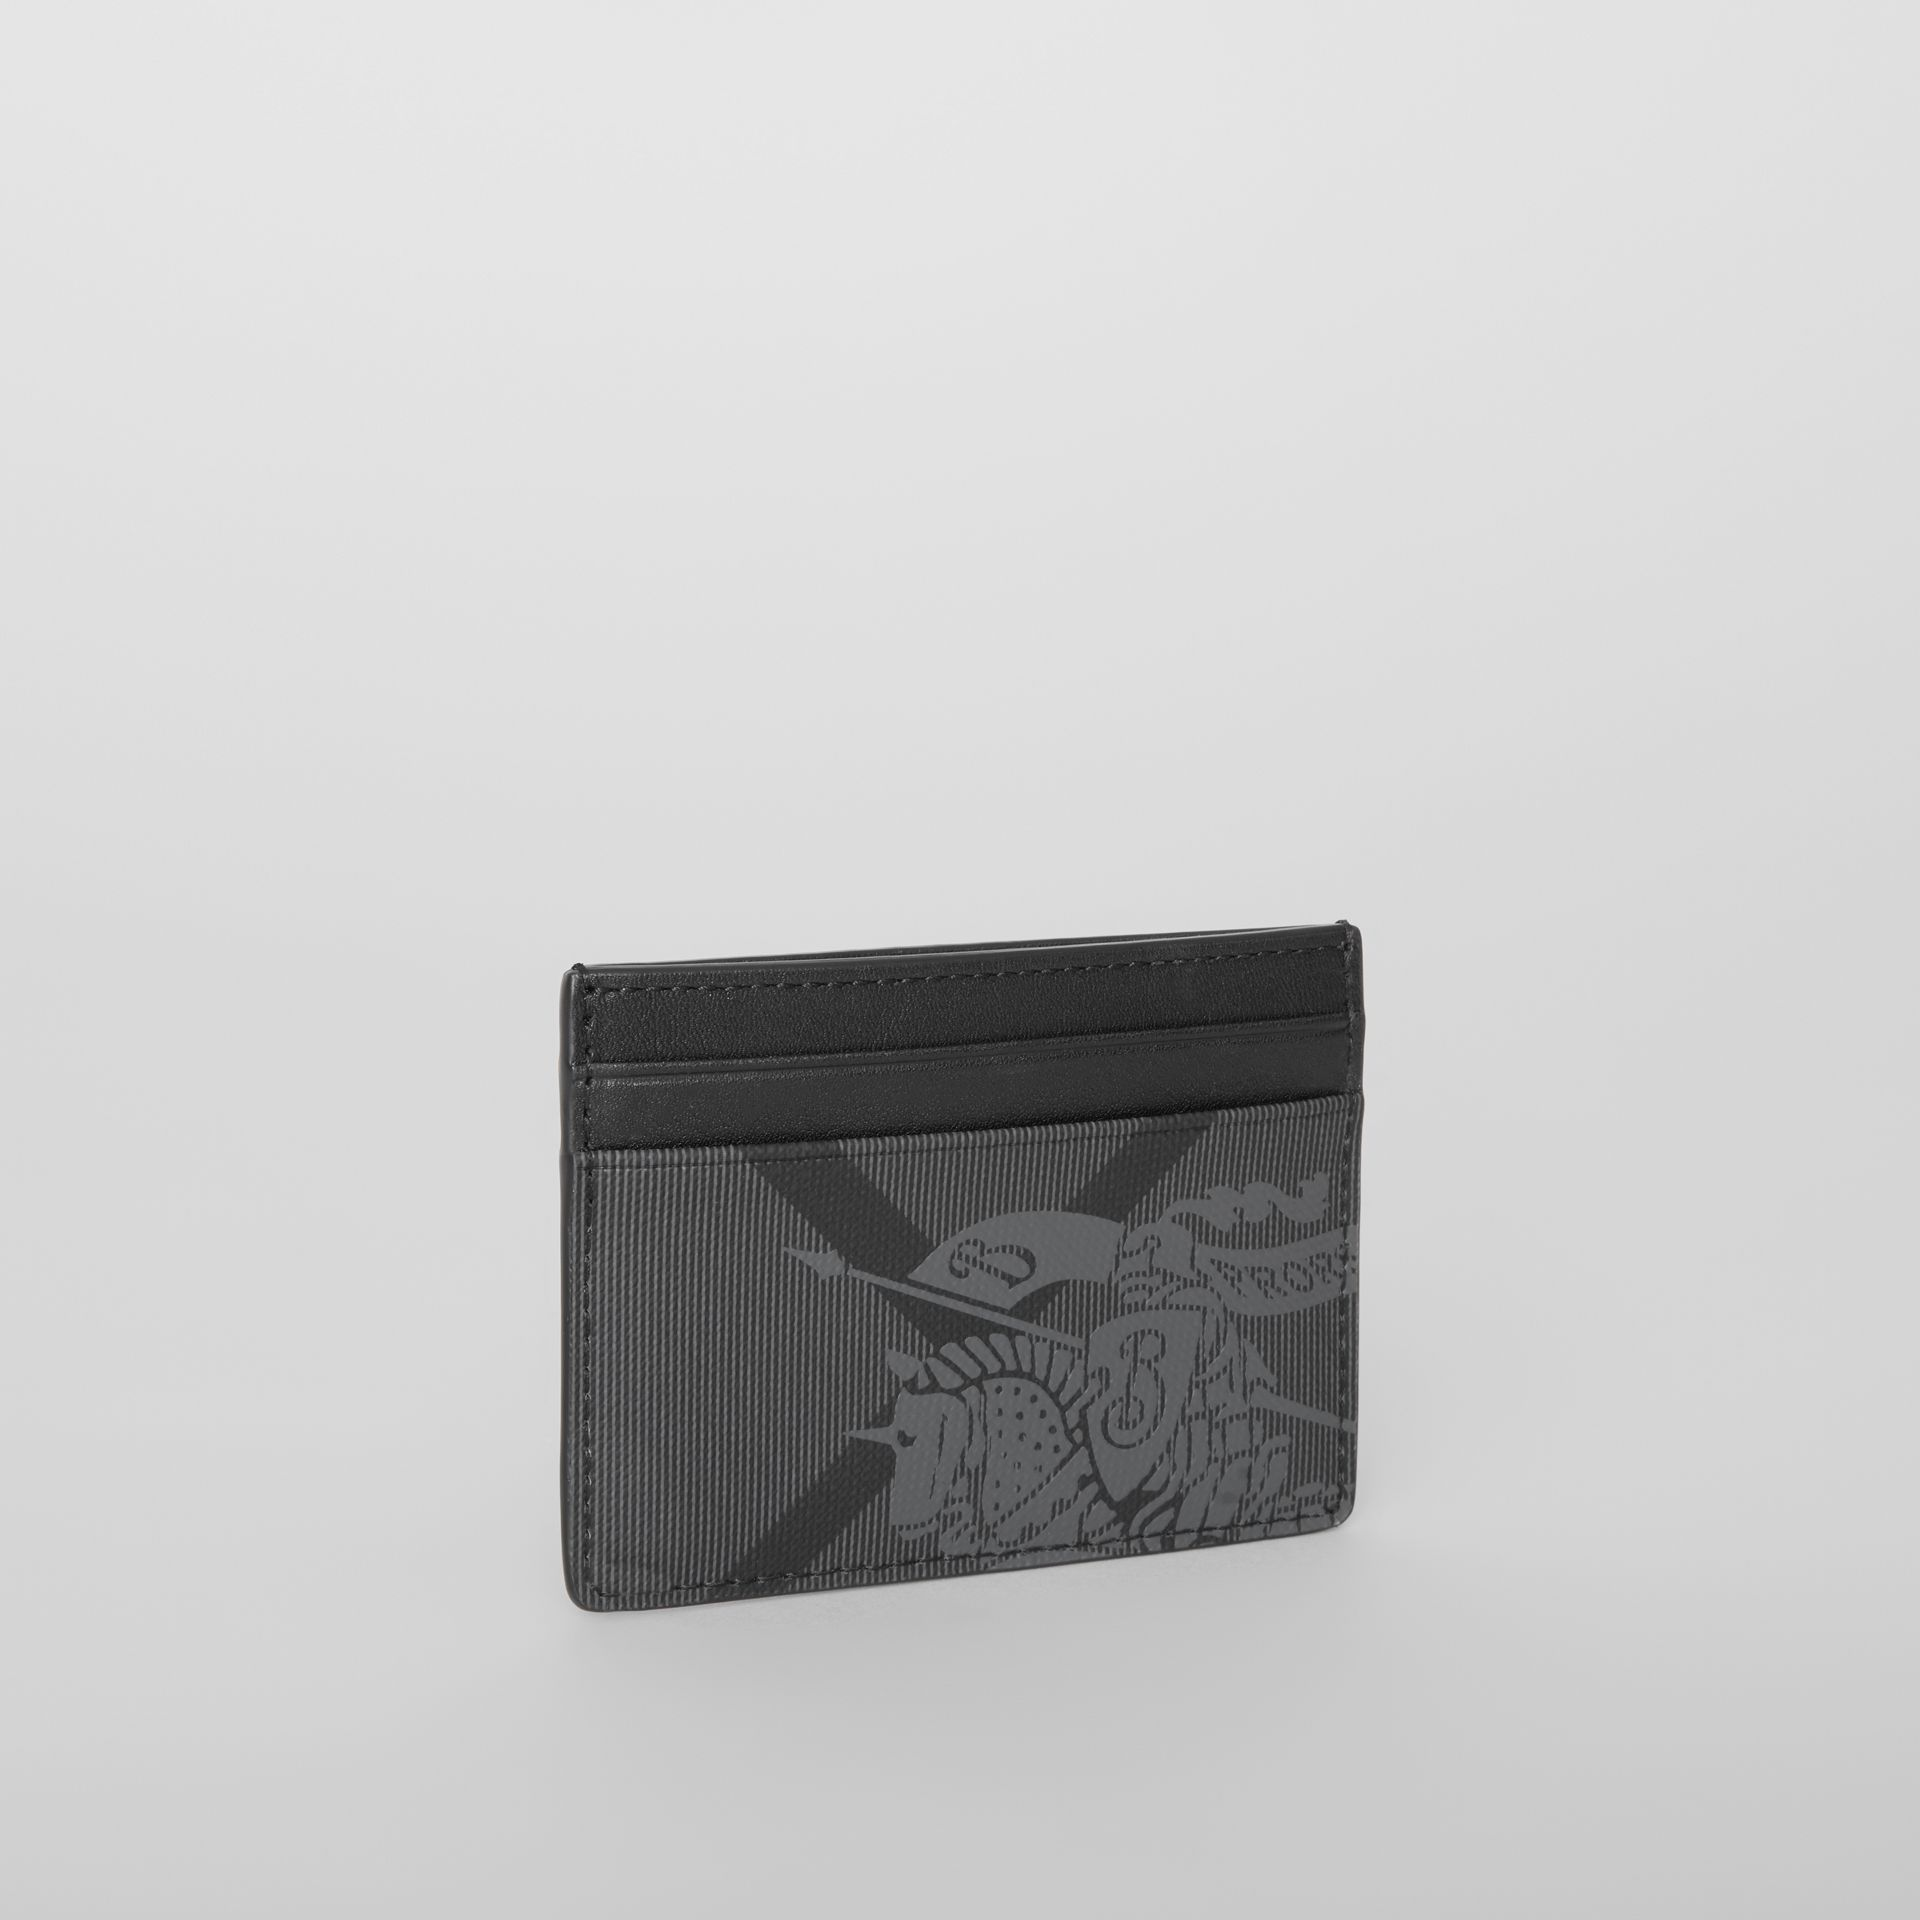 EKD London Check and Leather Card Case in Charcoal/black - Men | Burberry - gallery image 3